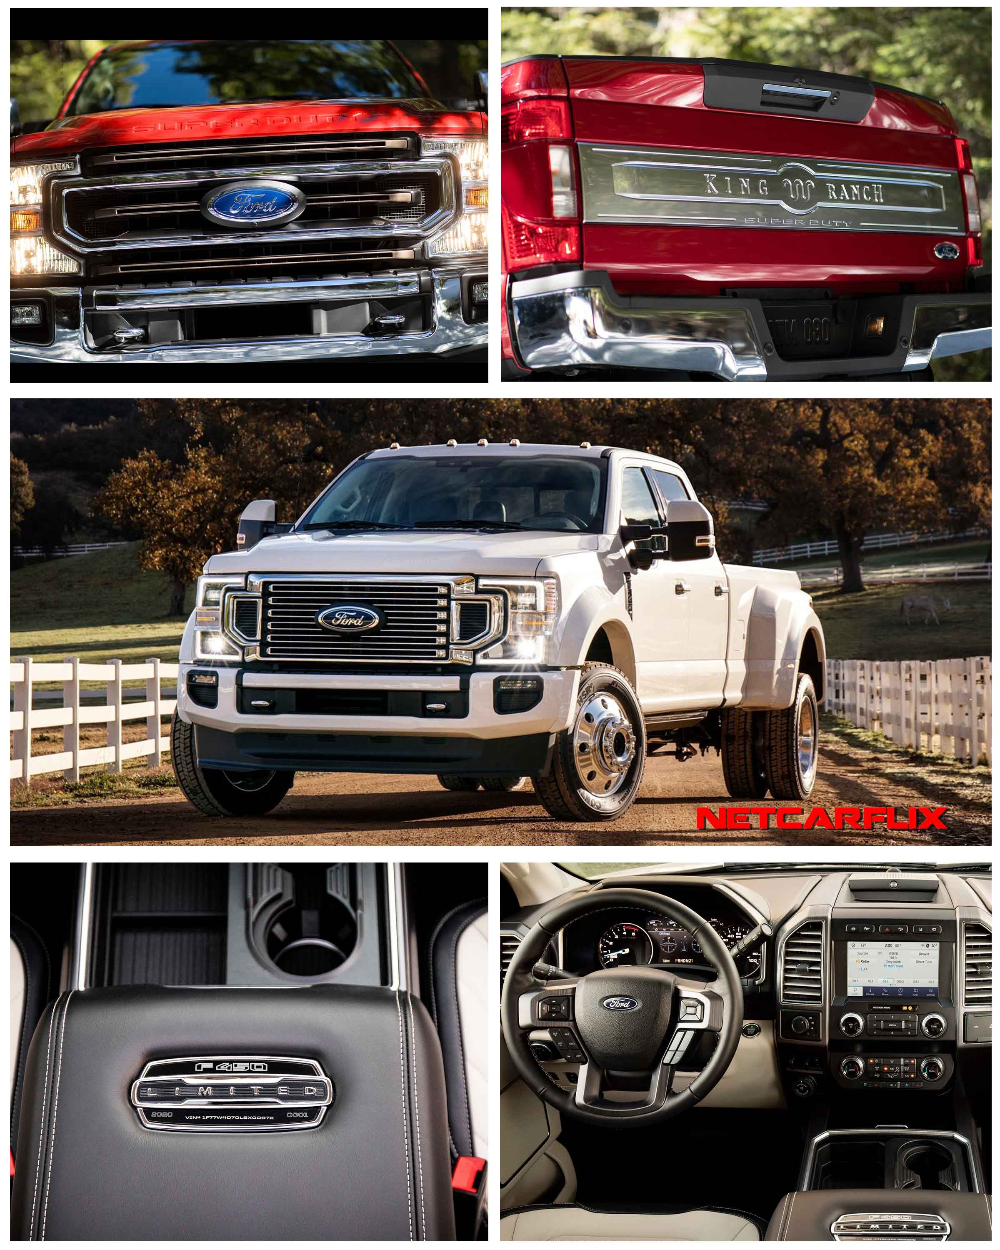 2020 Ford F Series Super Duty Dailyrevs Com Ford F Series Ford F350 Super Duty Super Duty Trucks